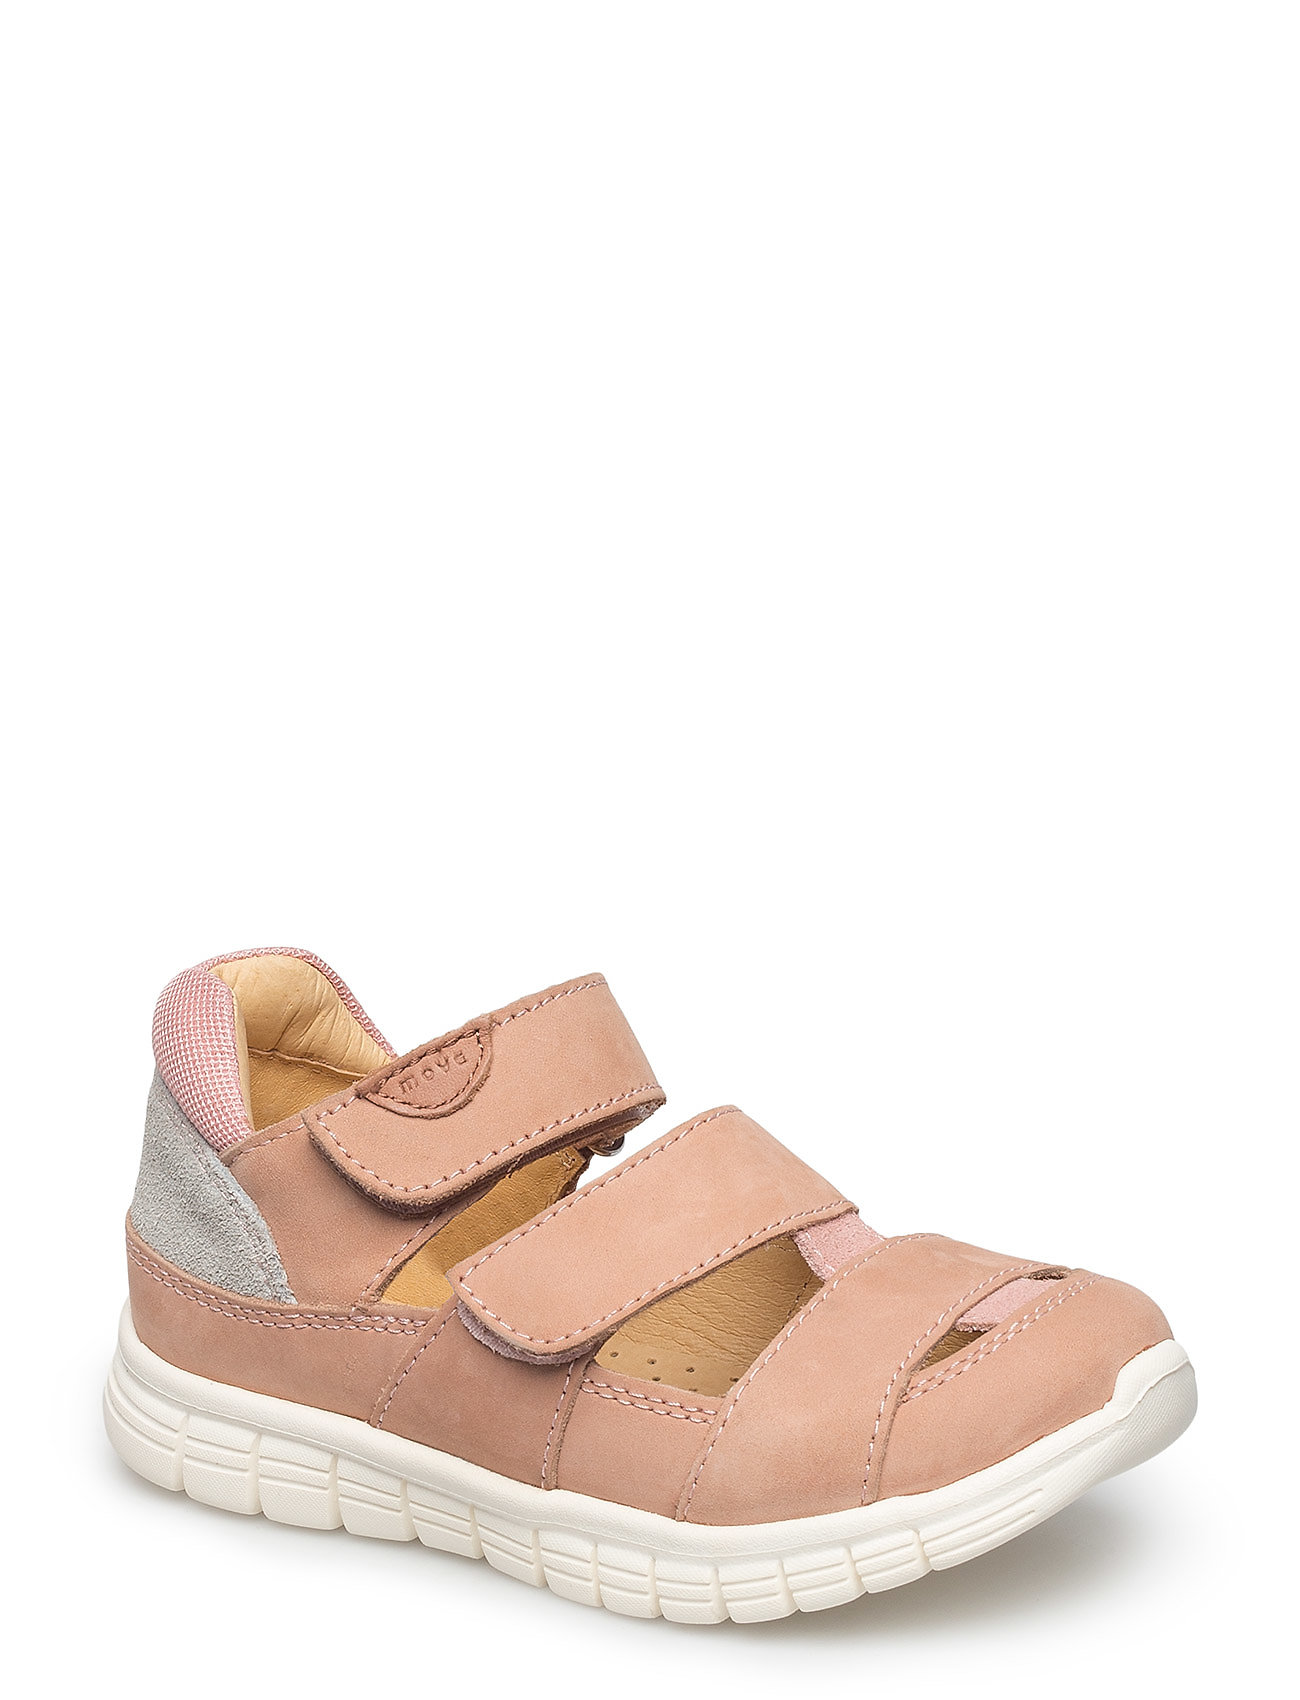 Infant Unisex Sporty Sandal Move by Melton Sandaler